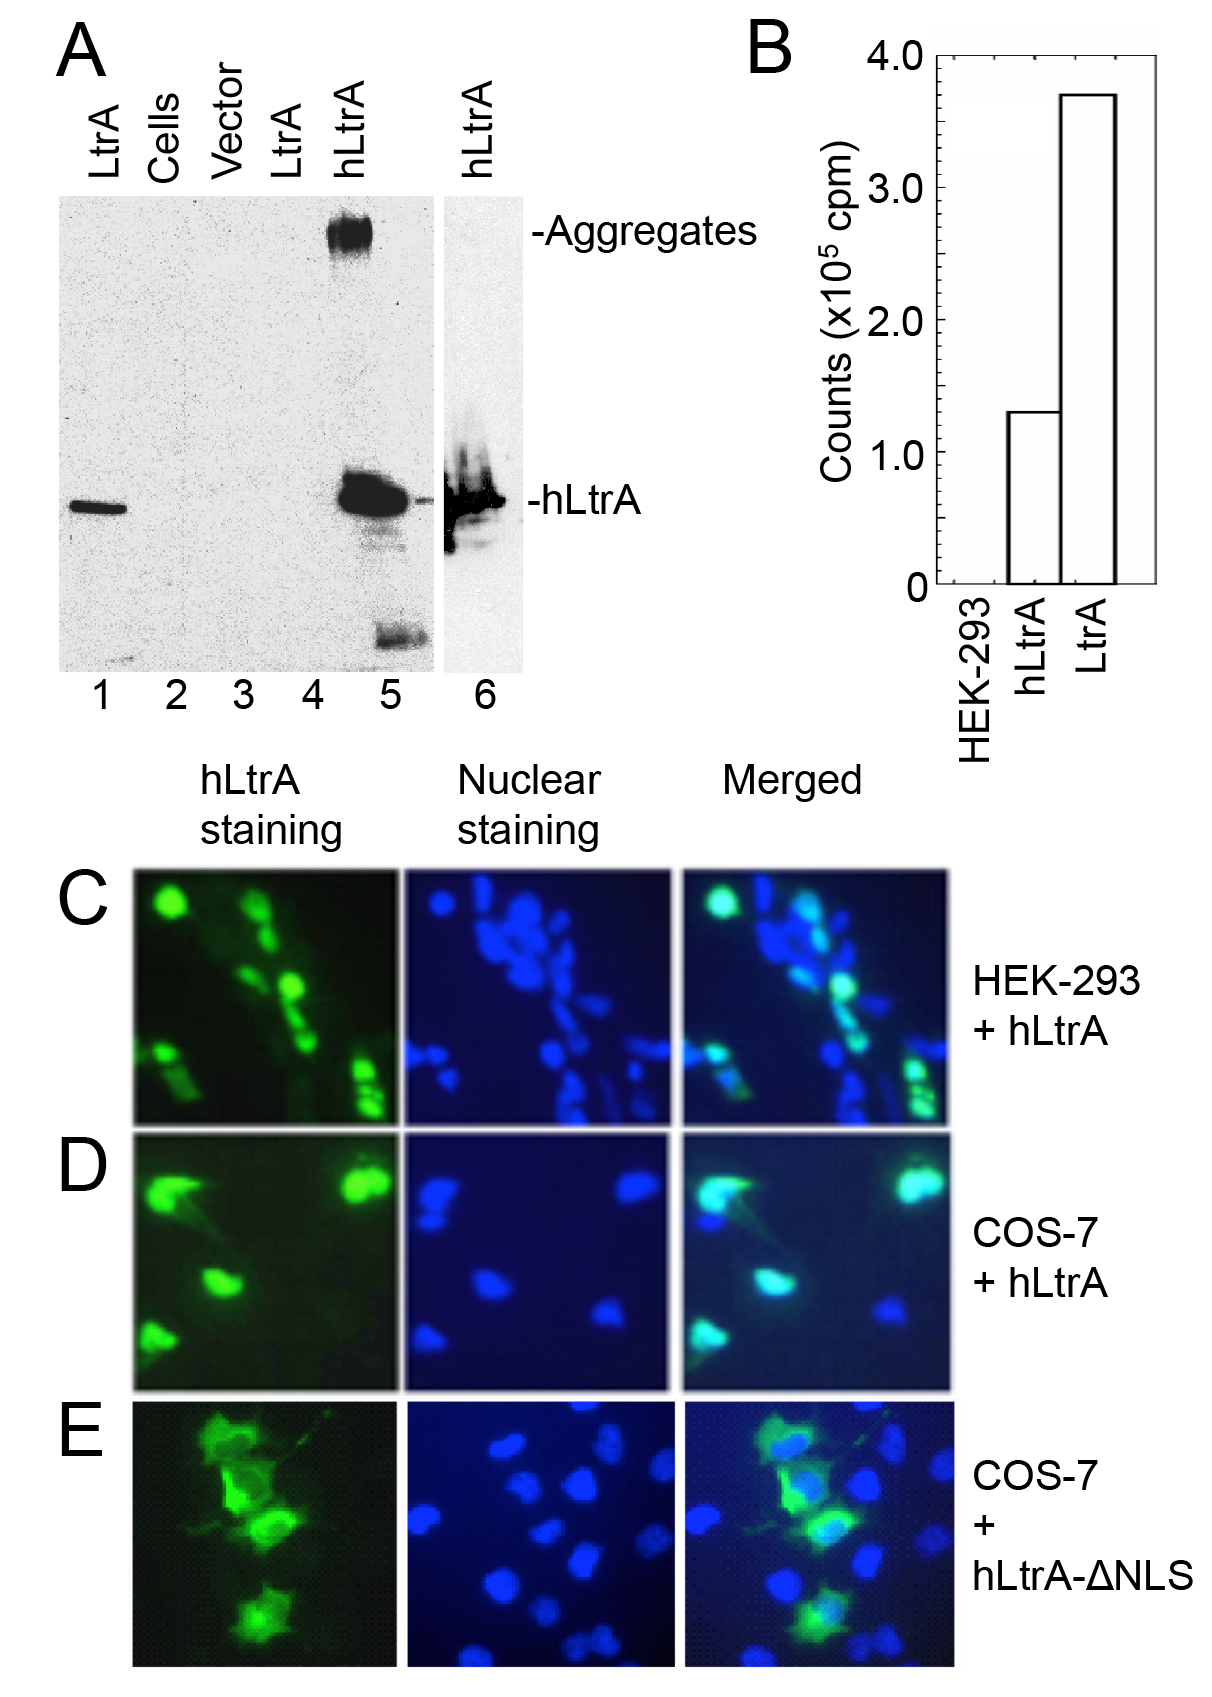 Human codon-optimized LtrA protein (hLtrA) with an SV40-NLS expressed in human cells has reverse transcriptase activity and localizes to the nucleus.